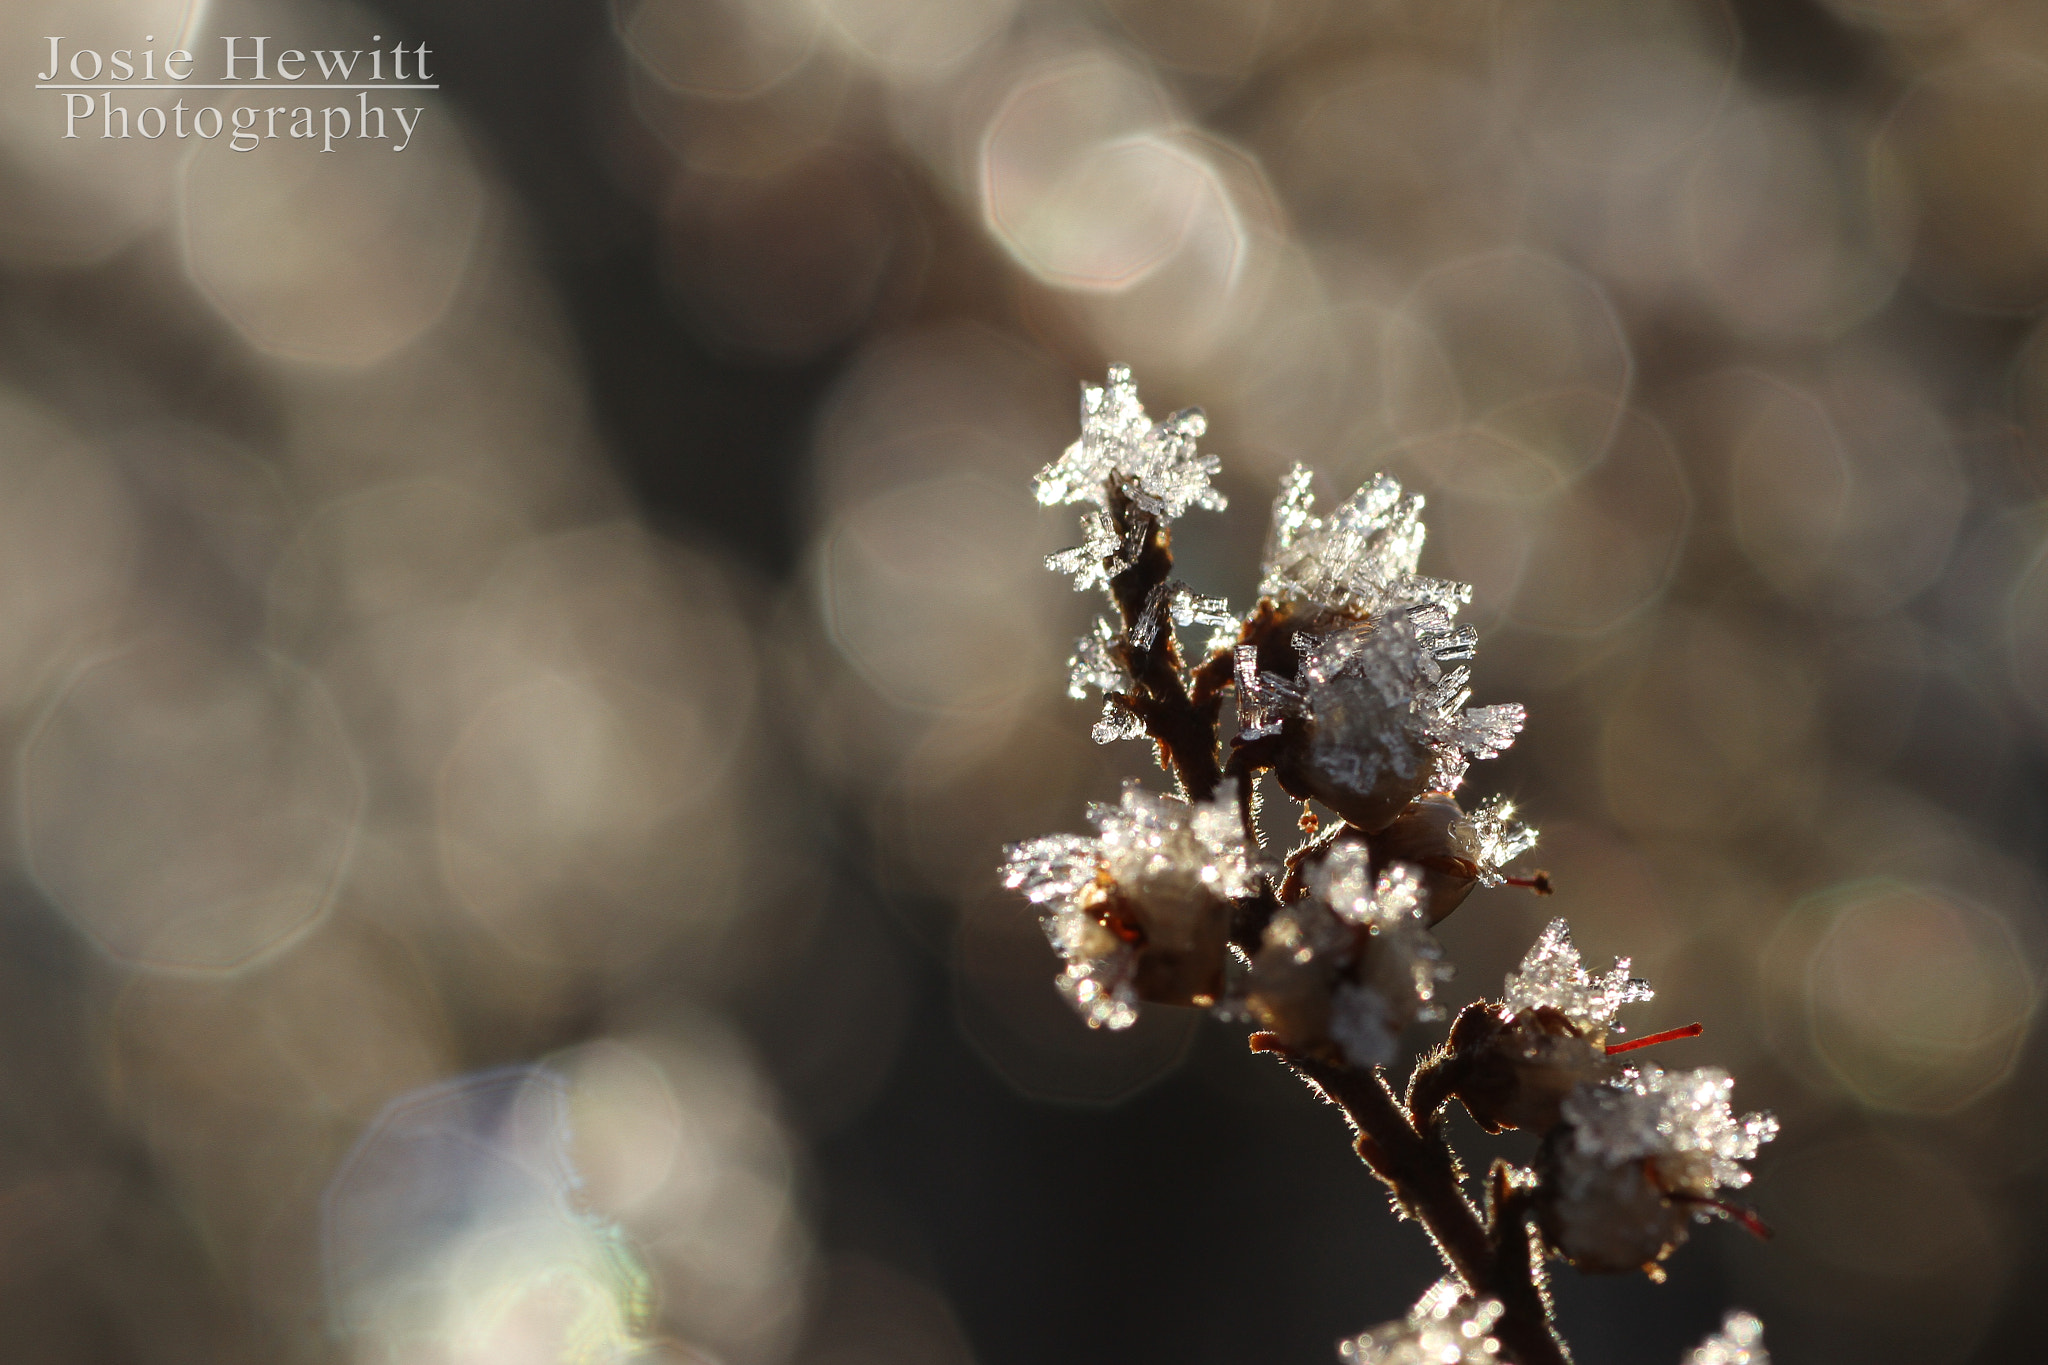 Photograph Frosty plant by Josie Hewitt on 500px